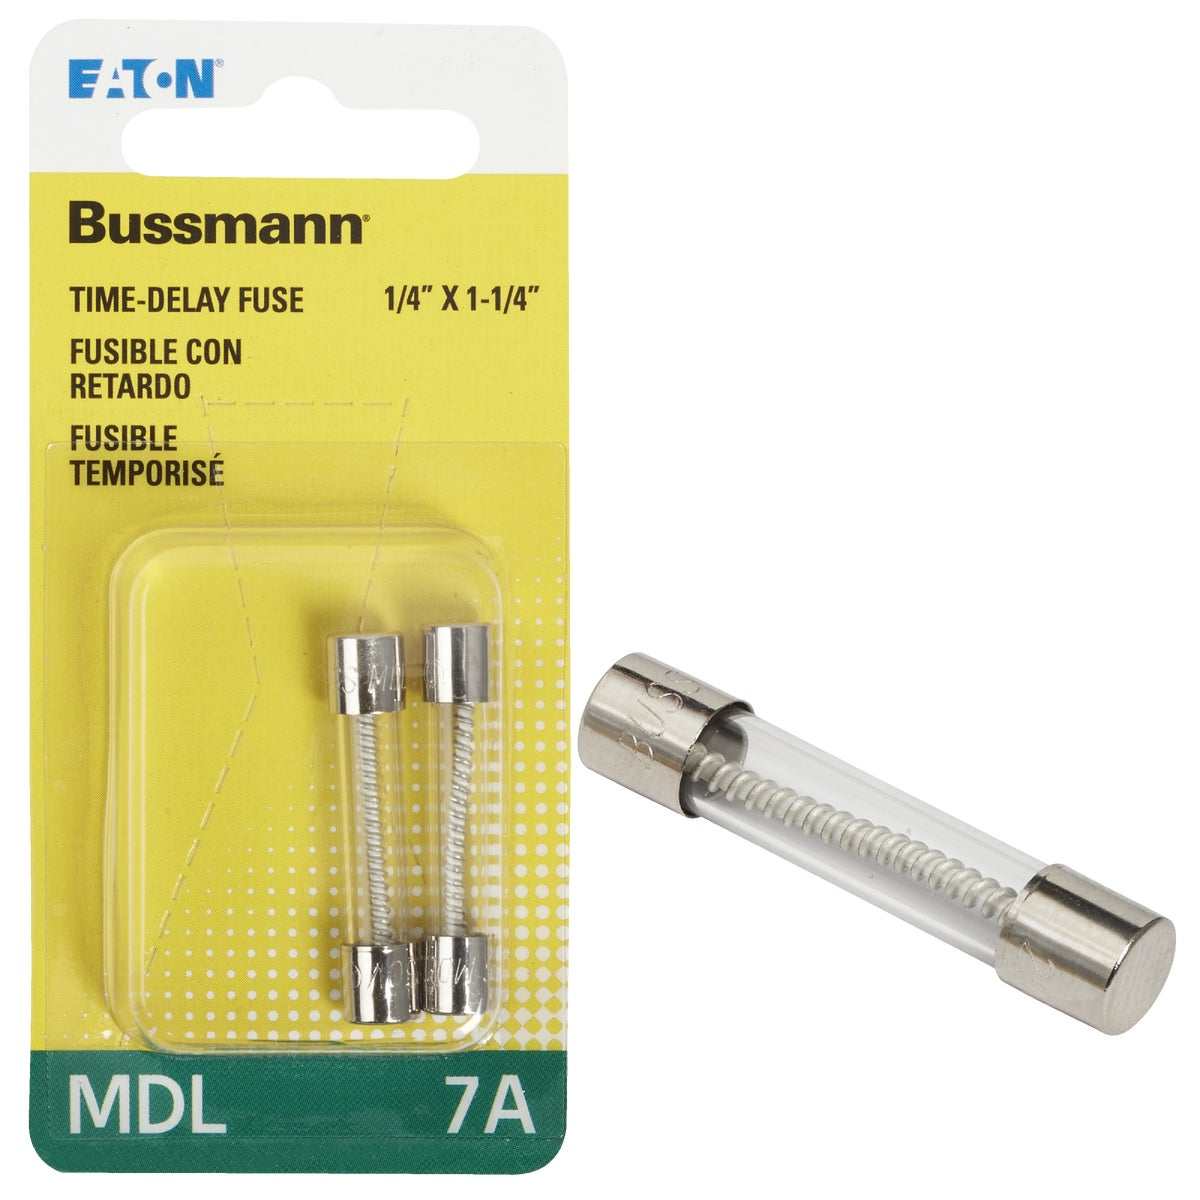 7A ELECTRONIC FUSE